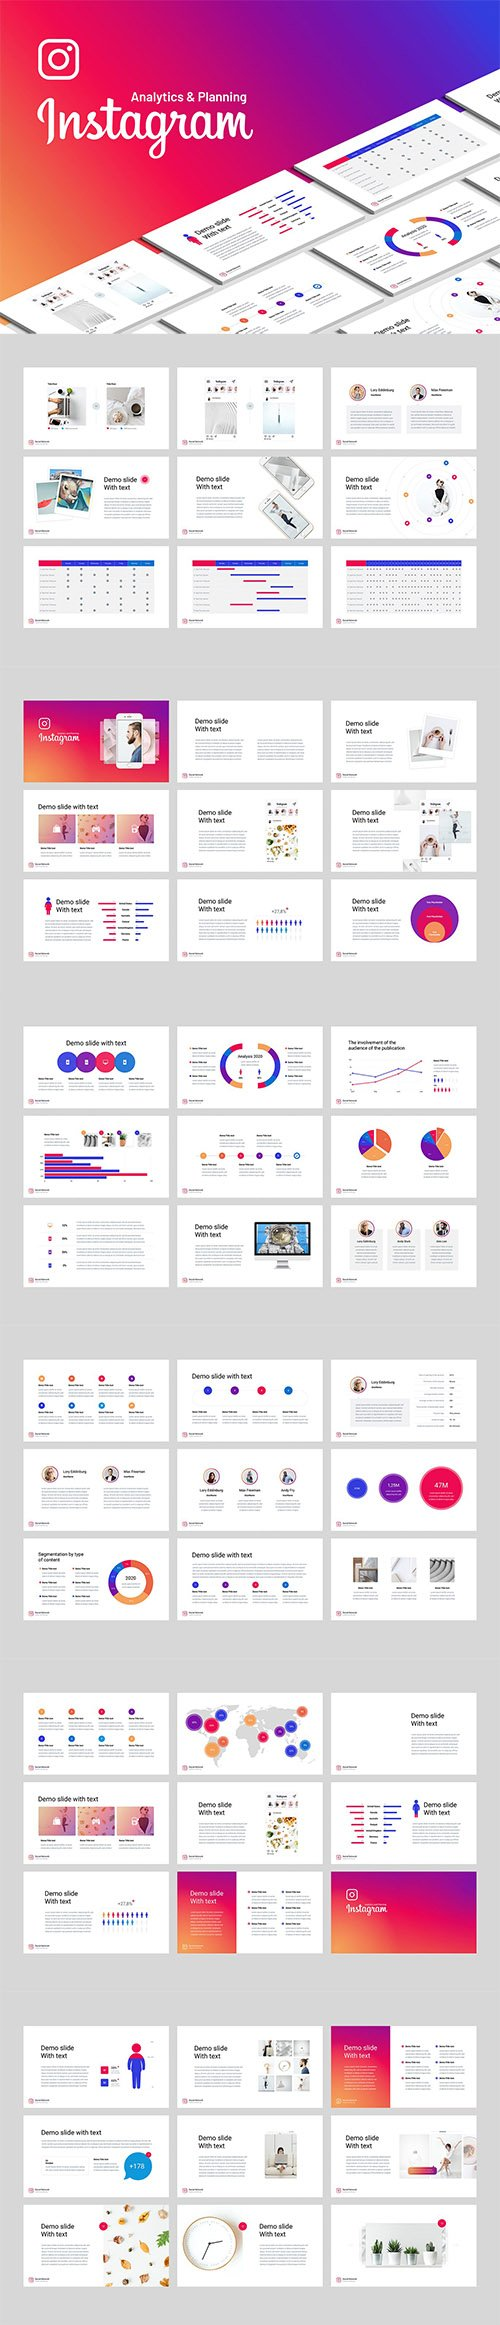 Instagram analysis PowerPoint and Keynote templates